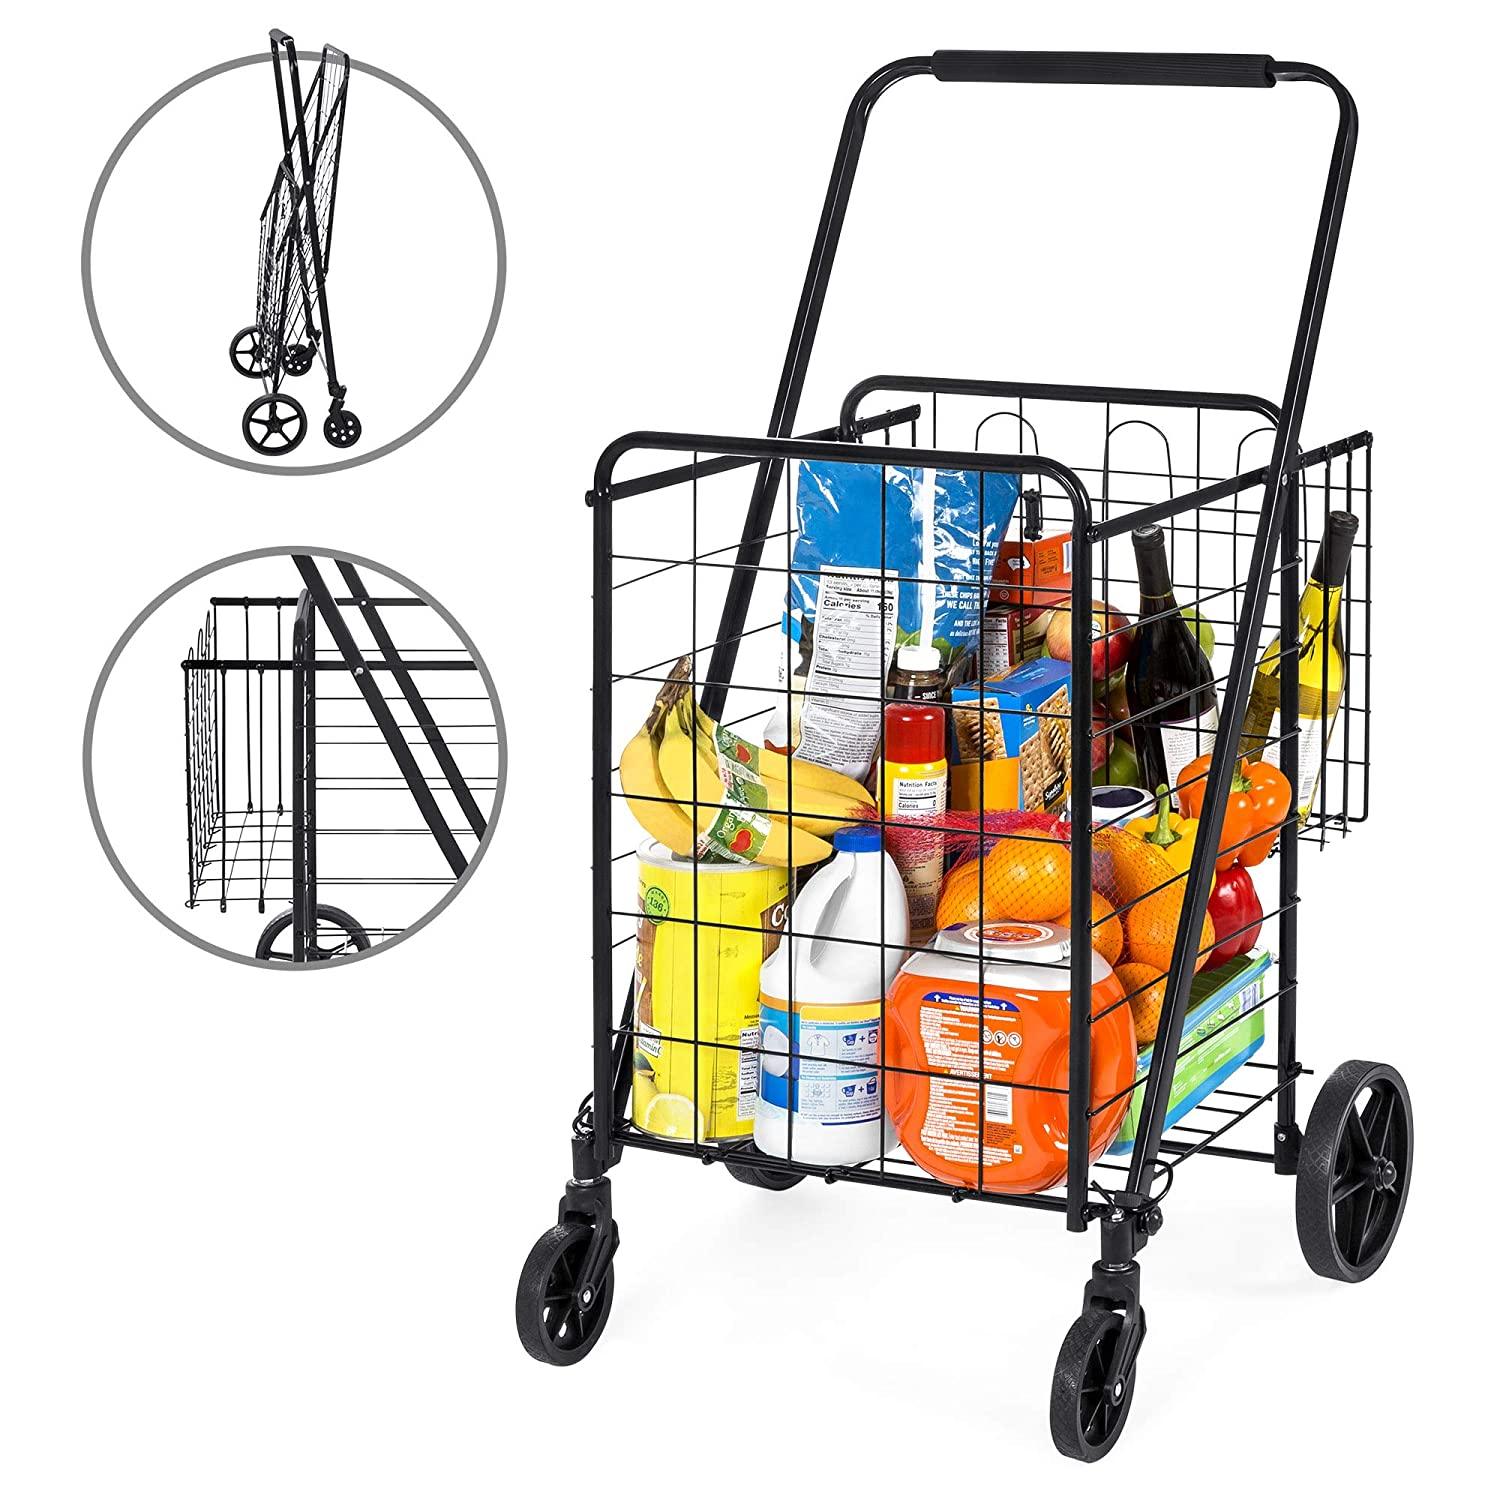 Best Choice Products 24.5×21.5in Portable Folding Multipurpose Steel Storage Utility Cart Dolly for Shopping, Groceries, Laundry w Bonus Basket, Swivel Double Front Wheels, Black